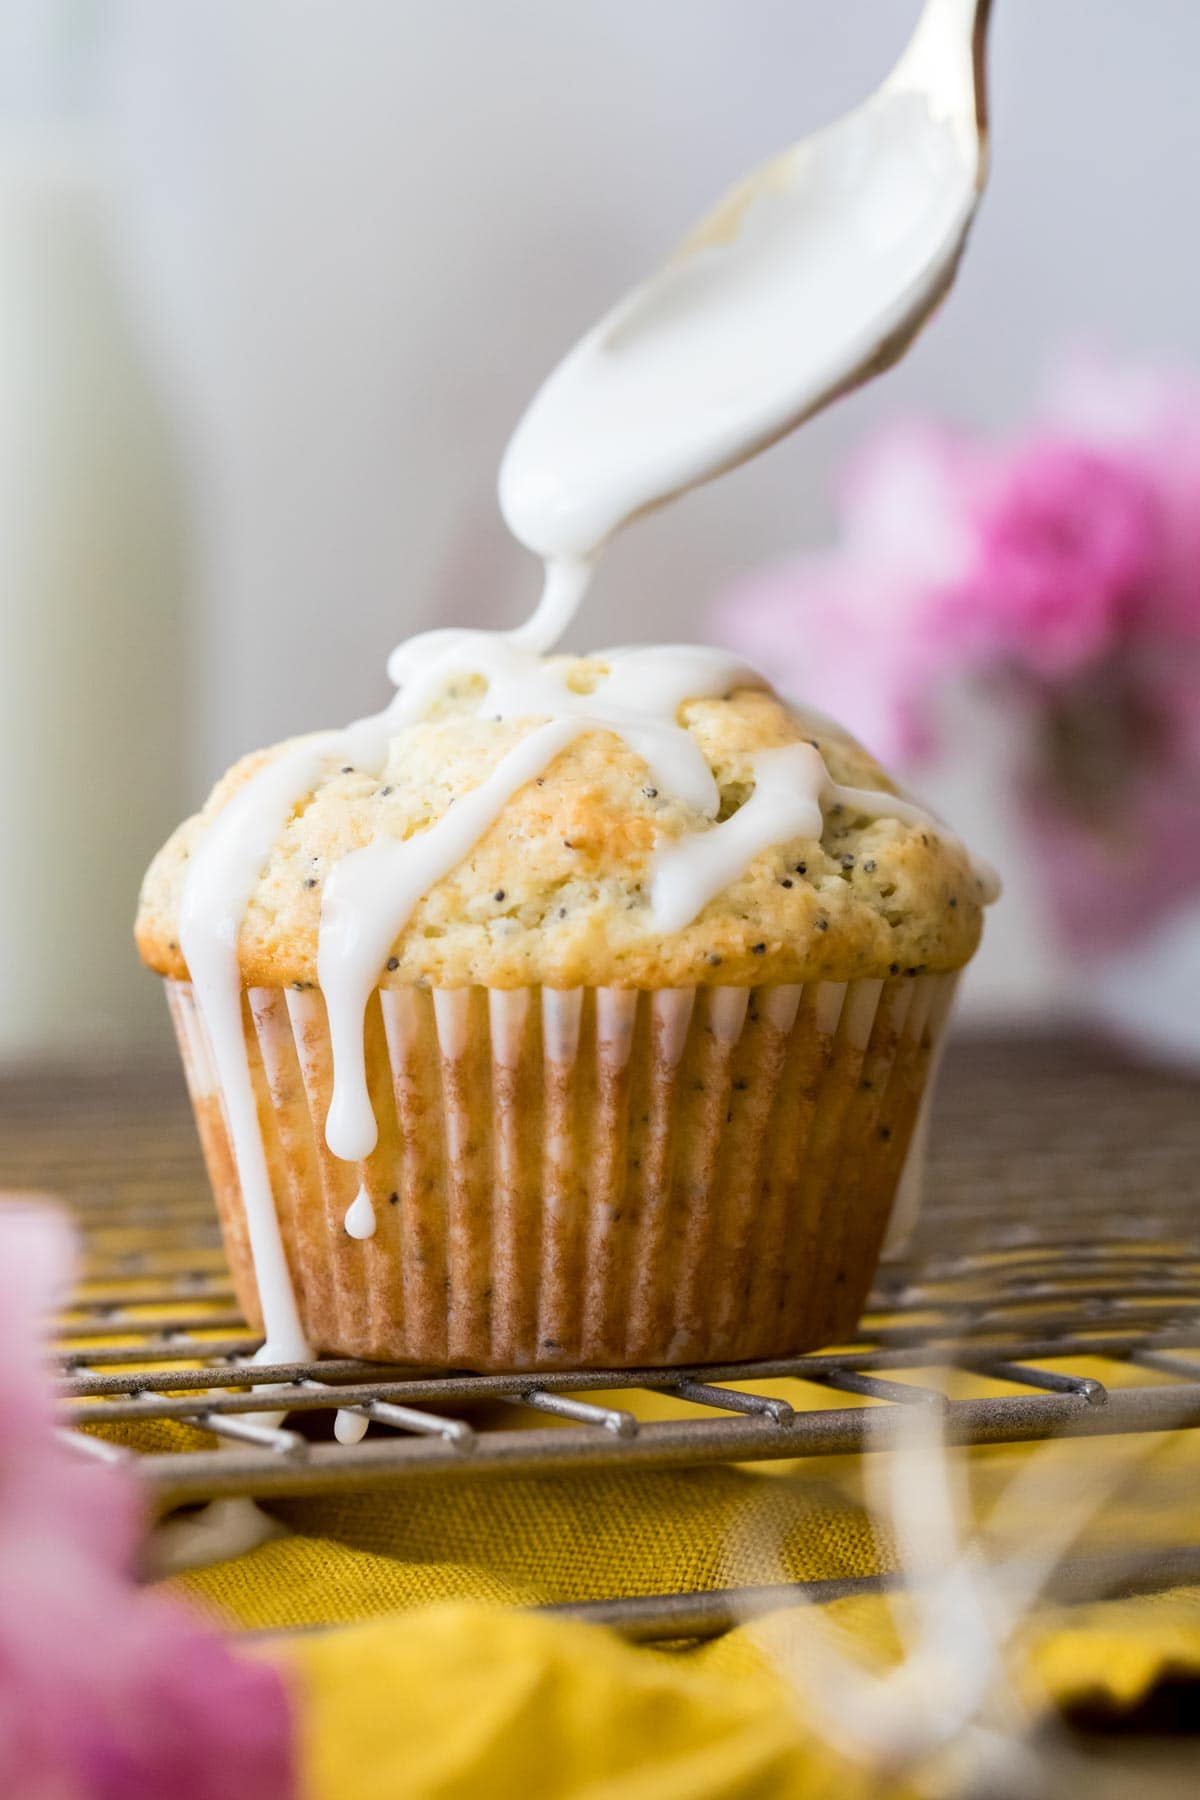 Drizzling icing on lemon poppy seed muffin